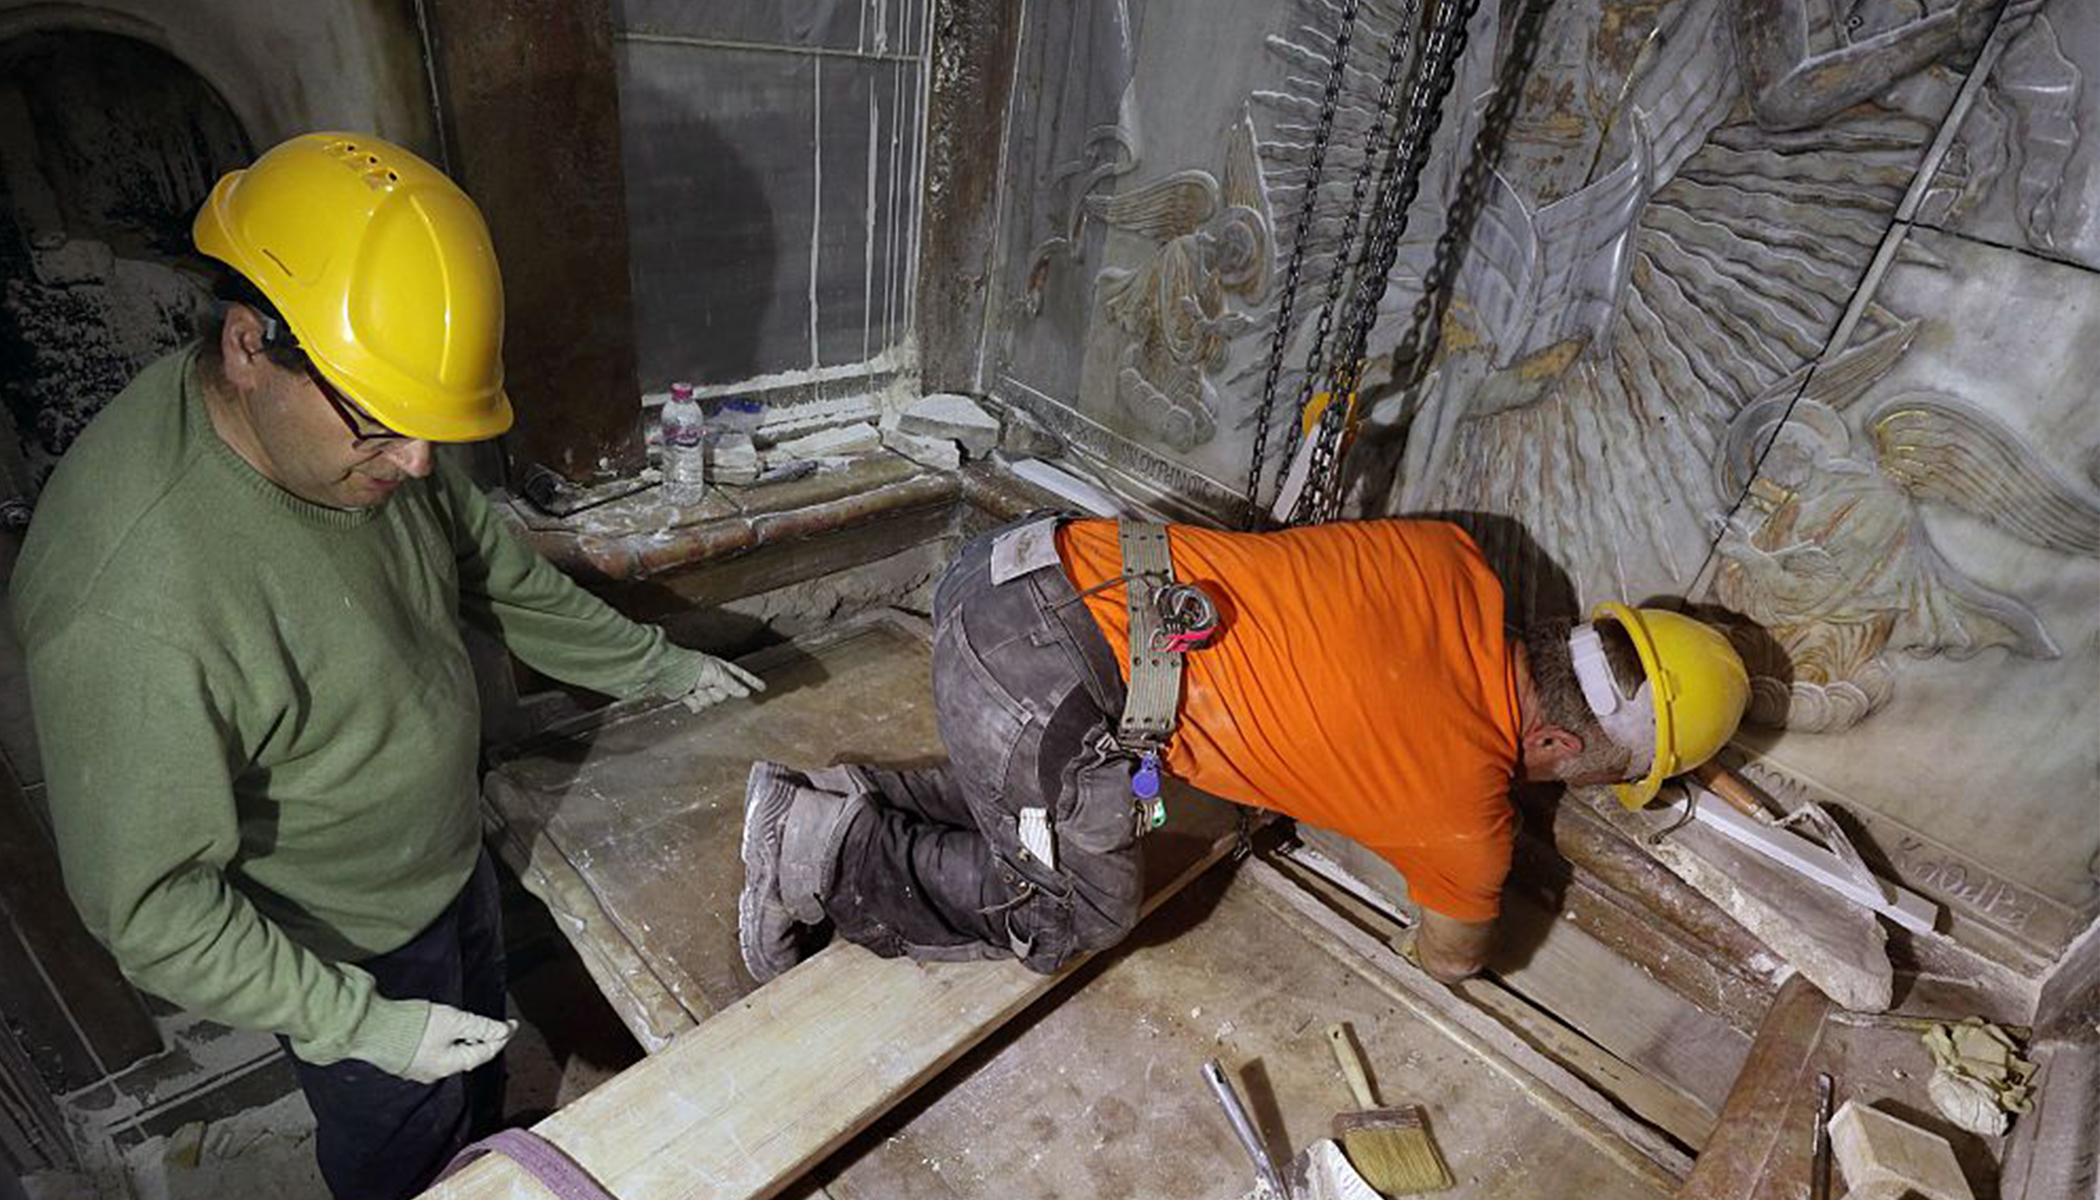 Jesus Christ's Tomb Opened by Crew for 1st Time in 500 Years, Reveals Amazing Discovery